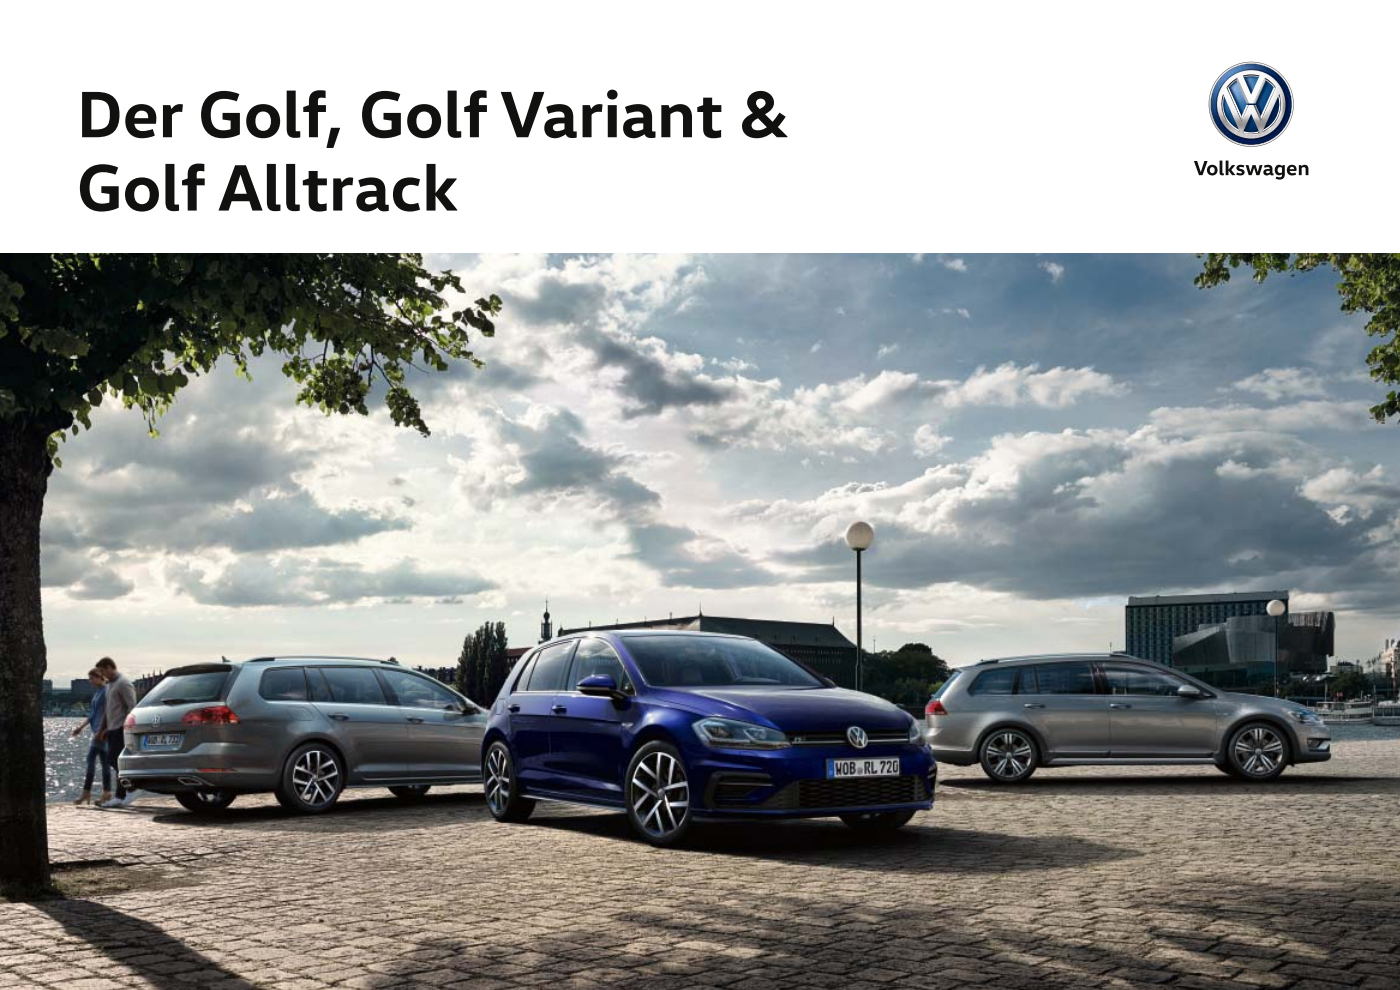 [DE]_VW_Golf_7_brochure_2019.jpg